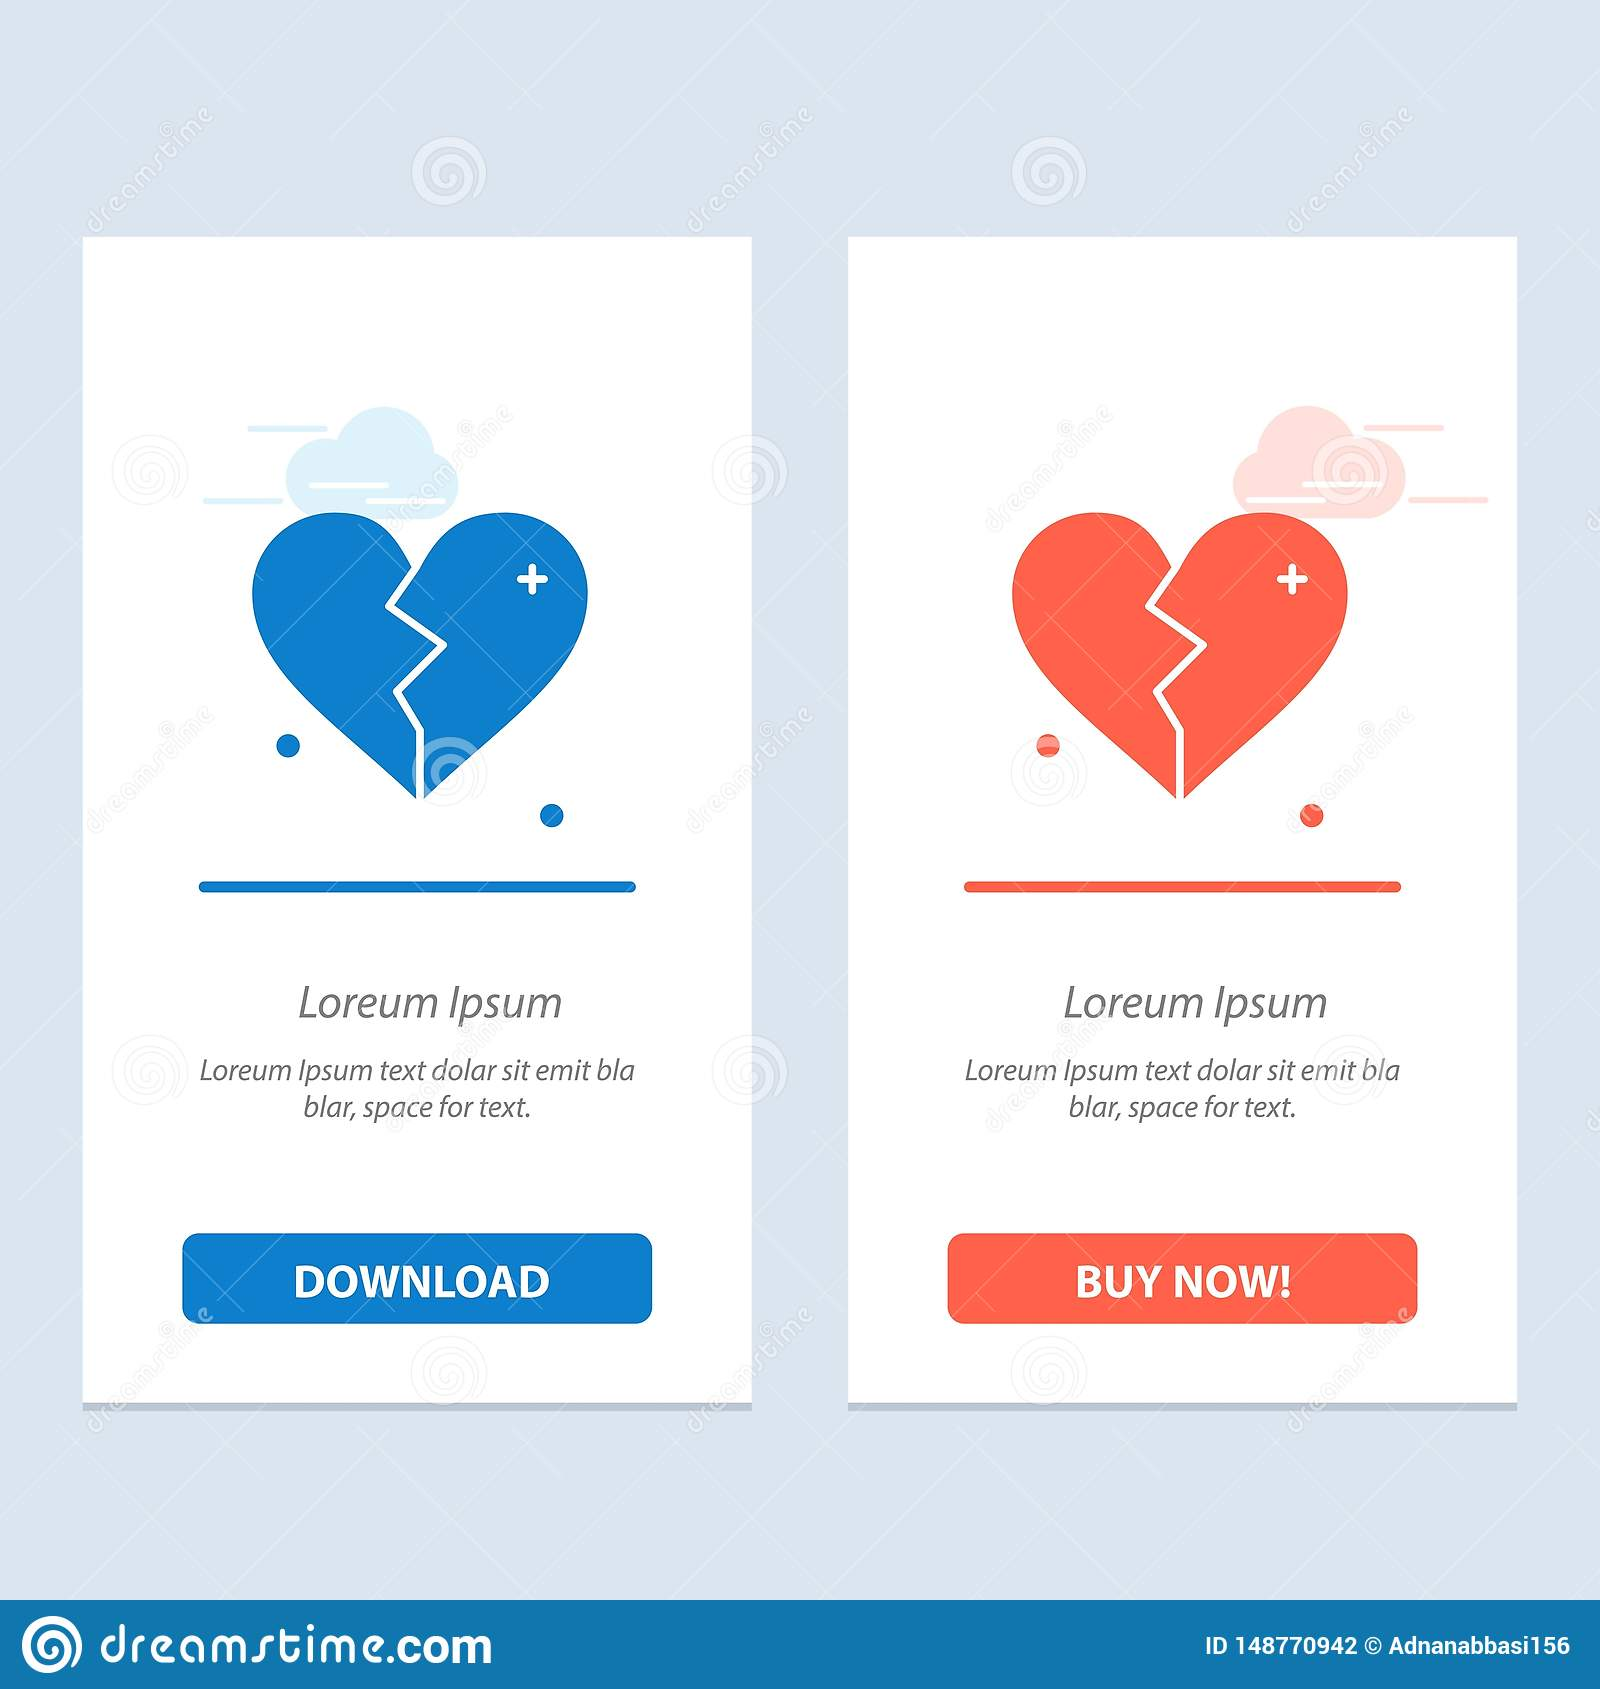 Broken, Love, Heart, Wedding Blue And Red Download And Buy